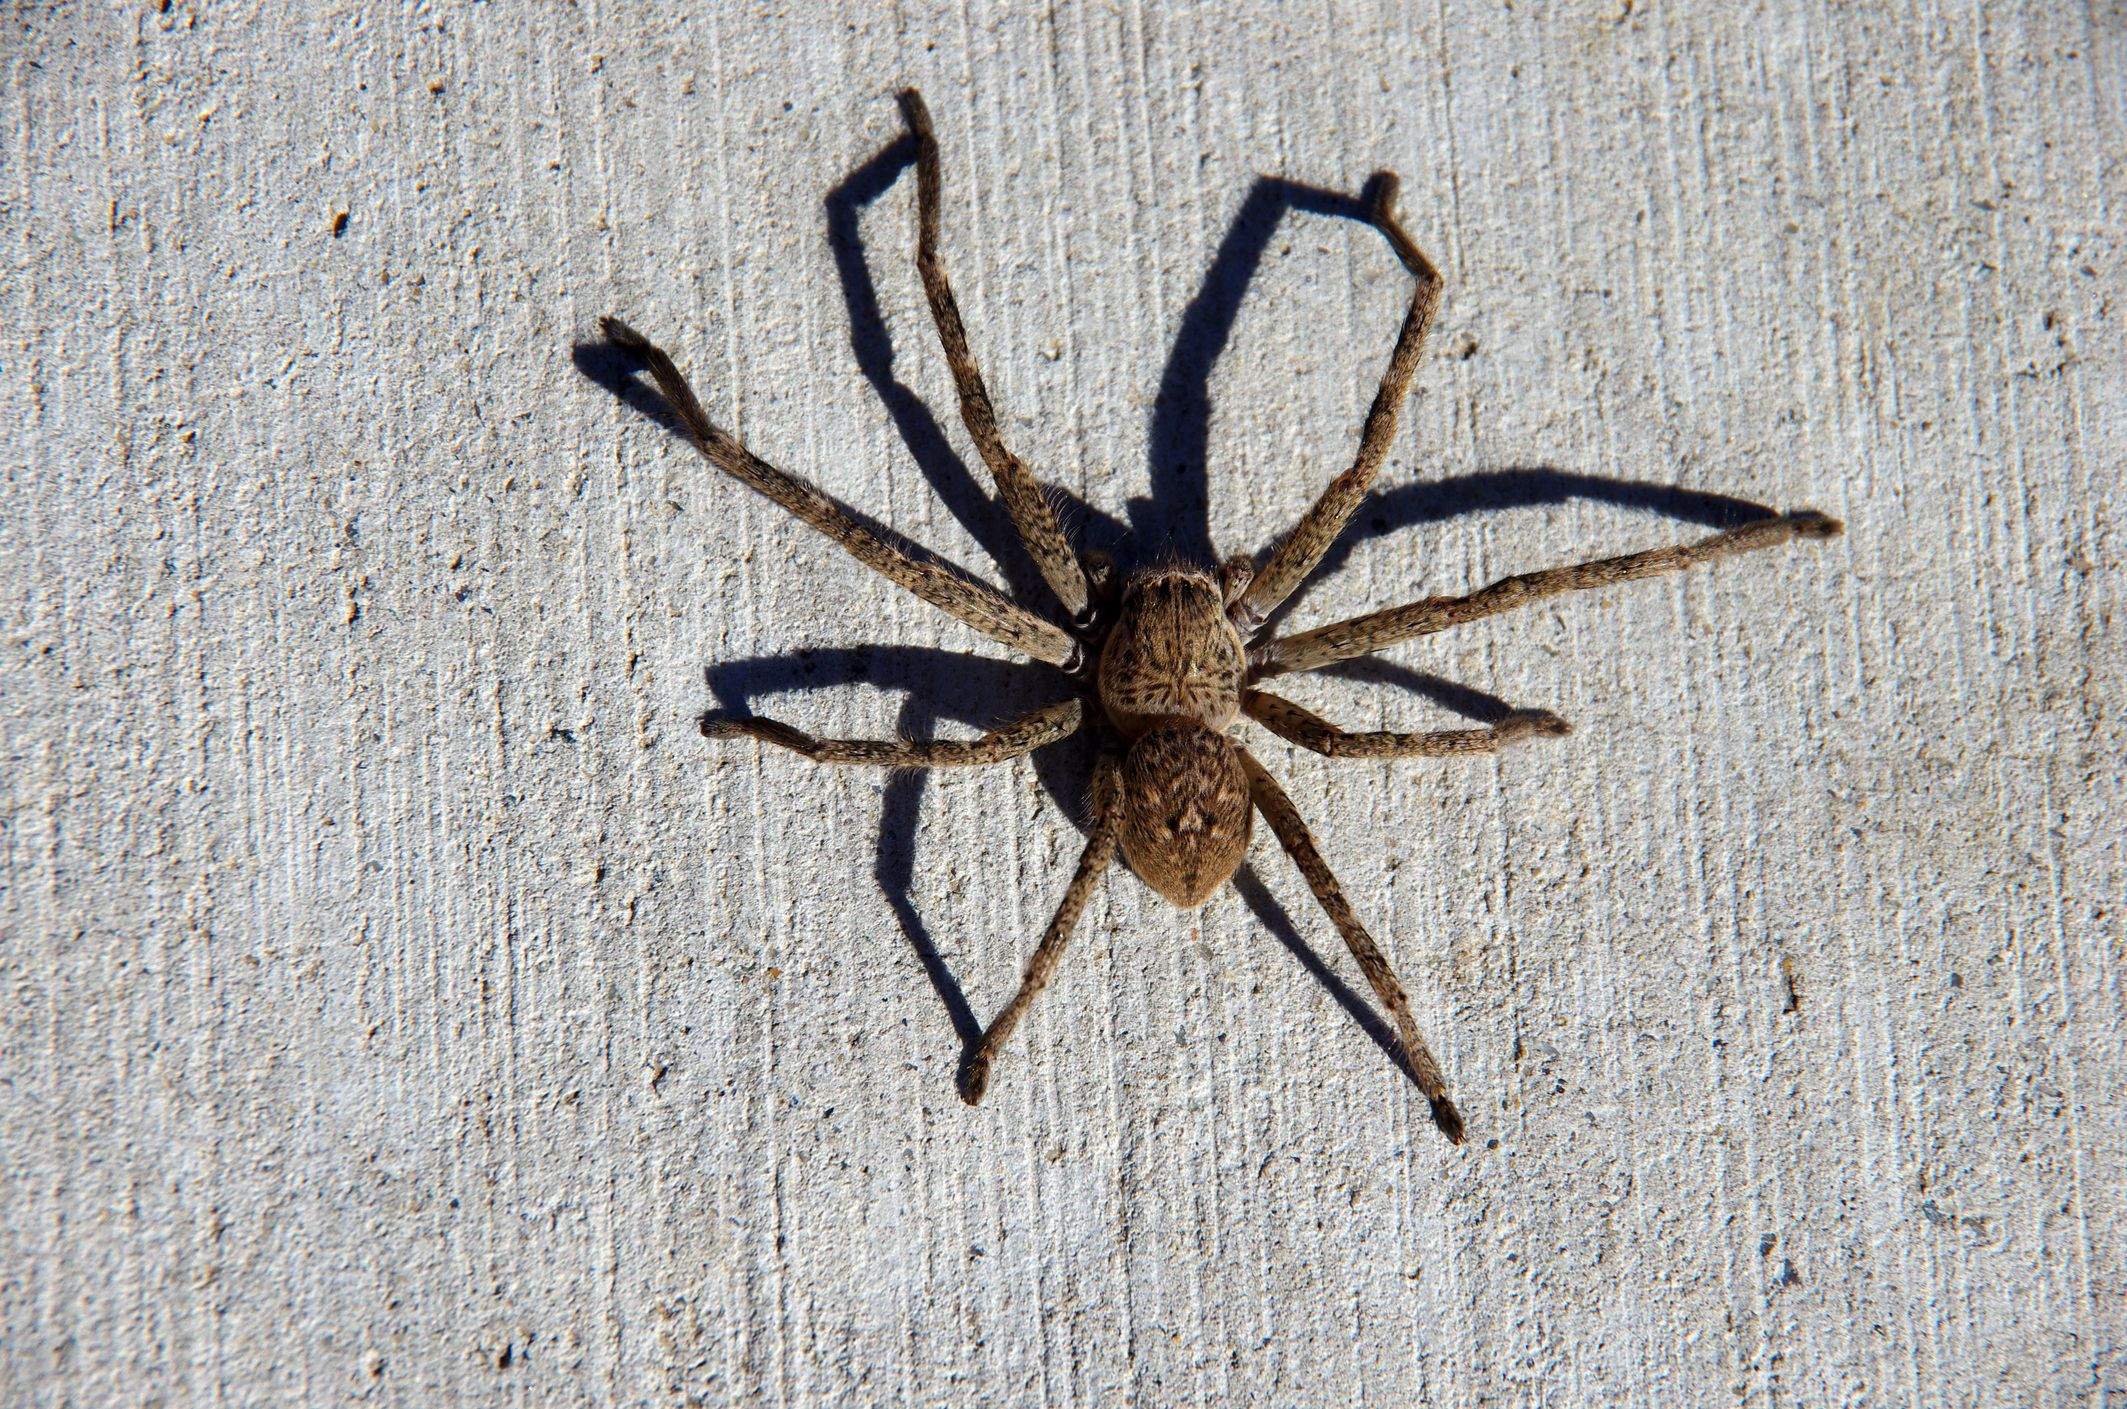 This Giant Huntsman Spider Literally Ate a Possum